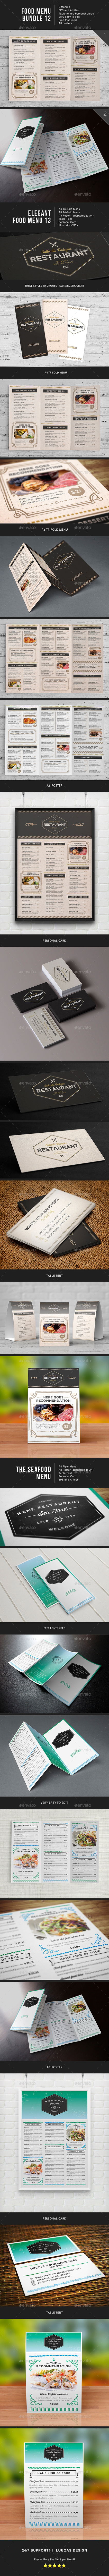 Food Menu Bundle 12 - Food Menus Print Templates